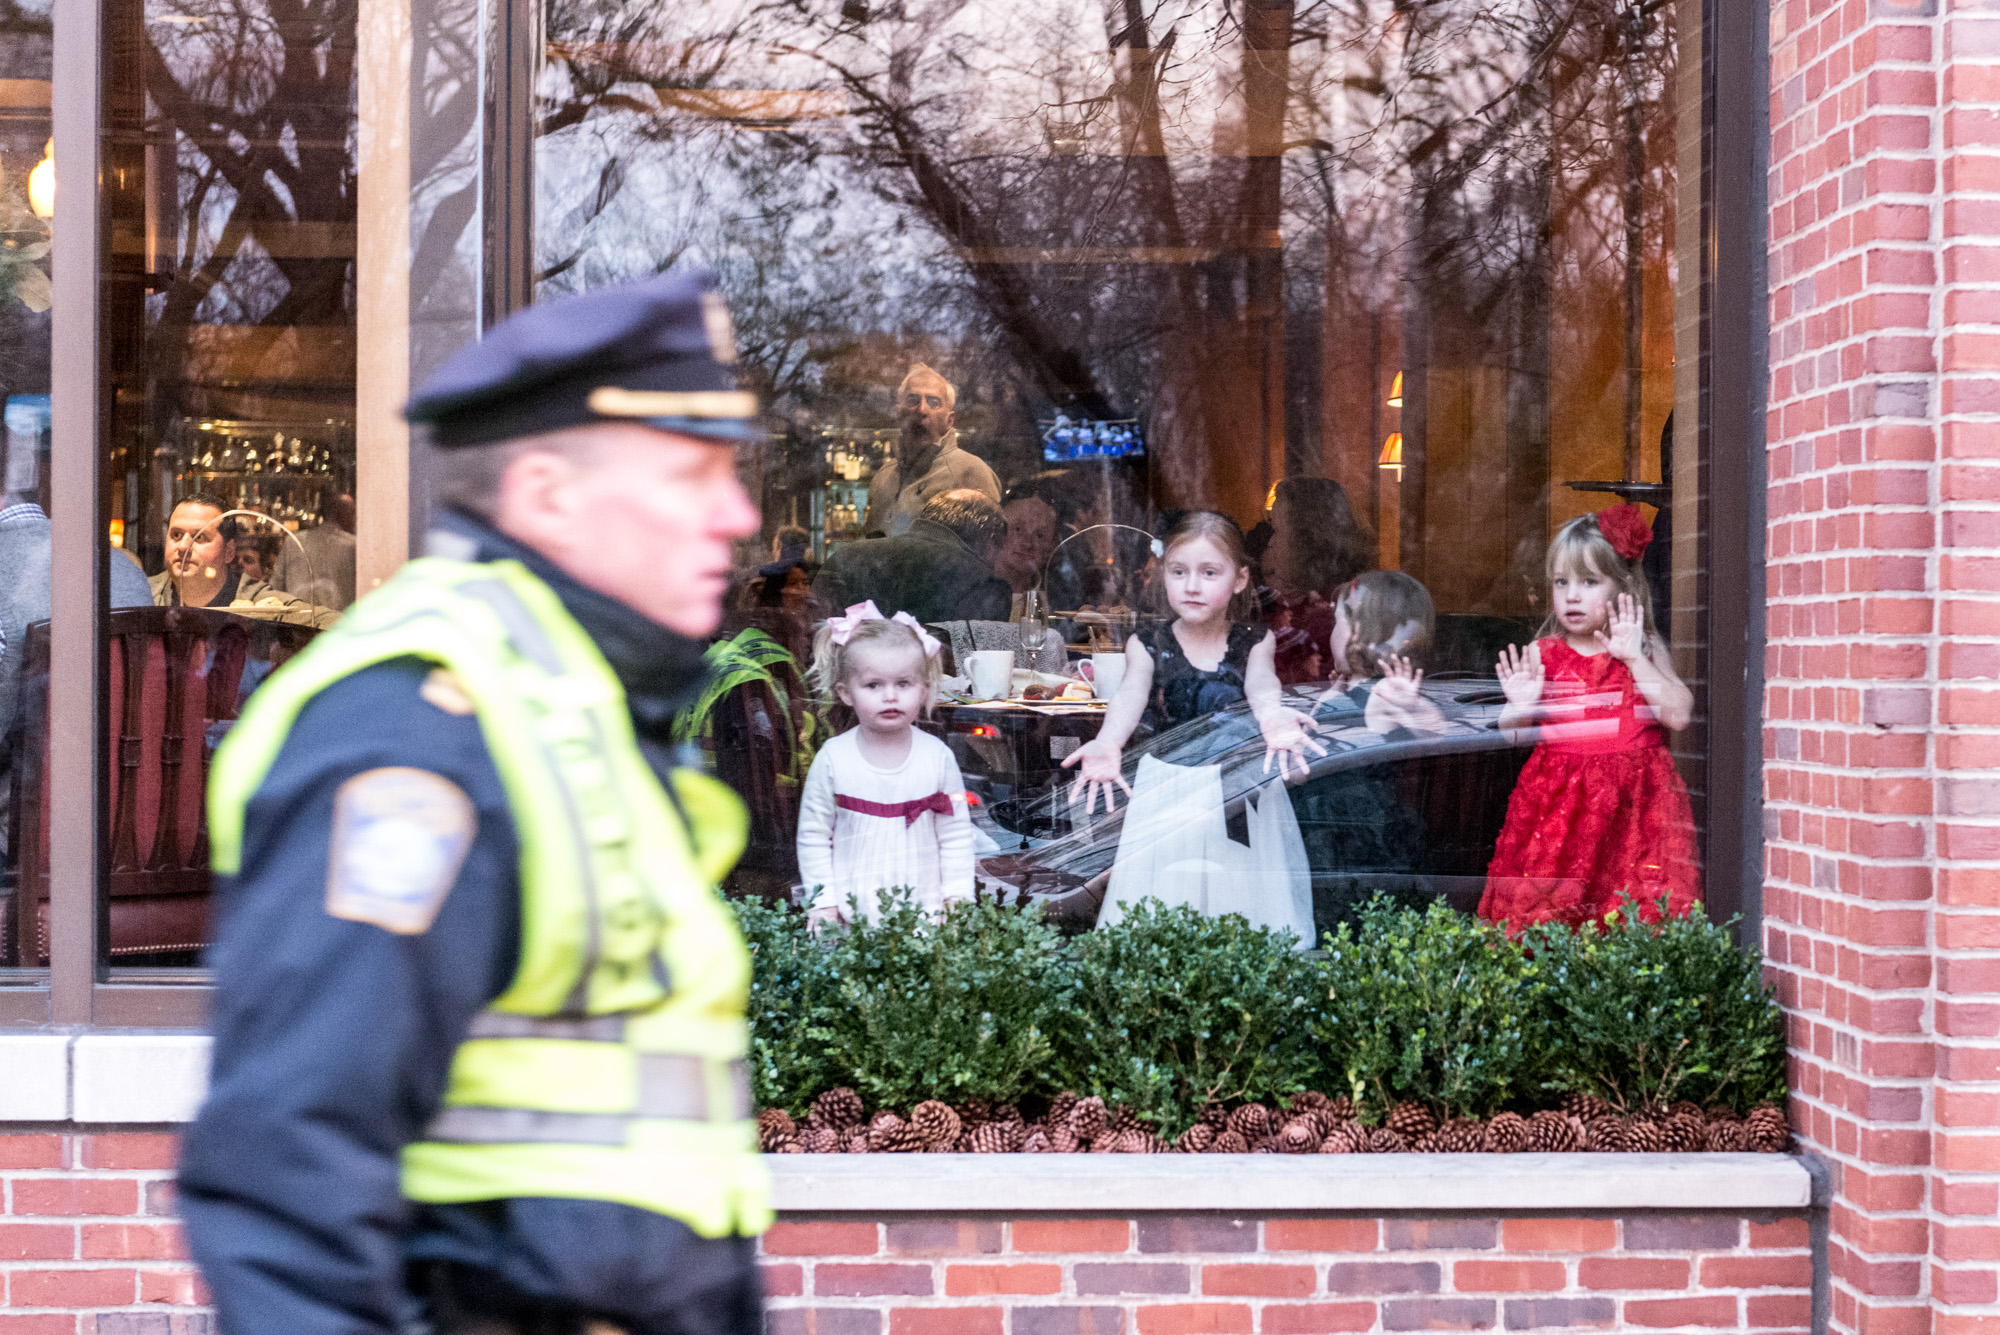 Three little girls looking at the marchers from a restaurant window on Boylston Street